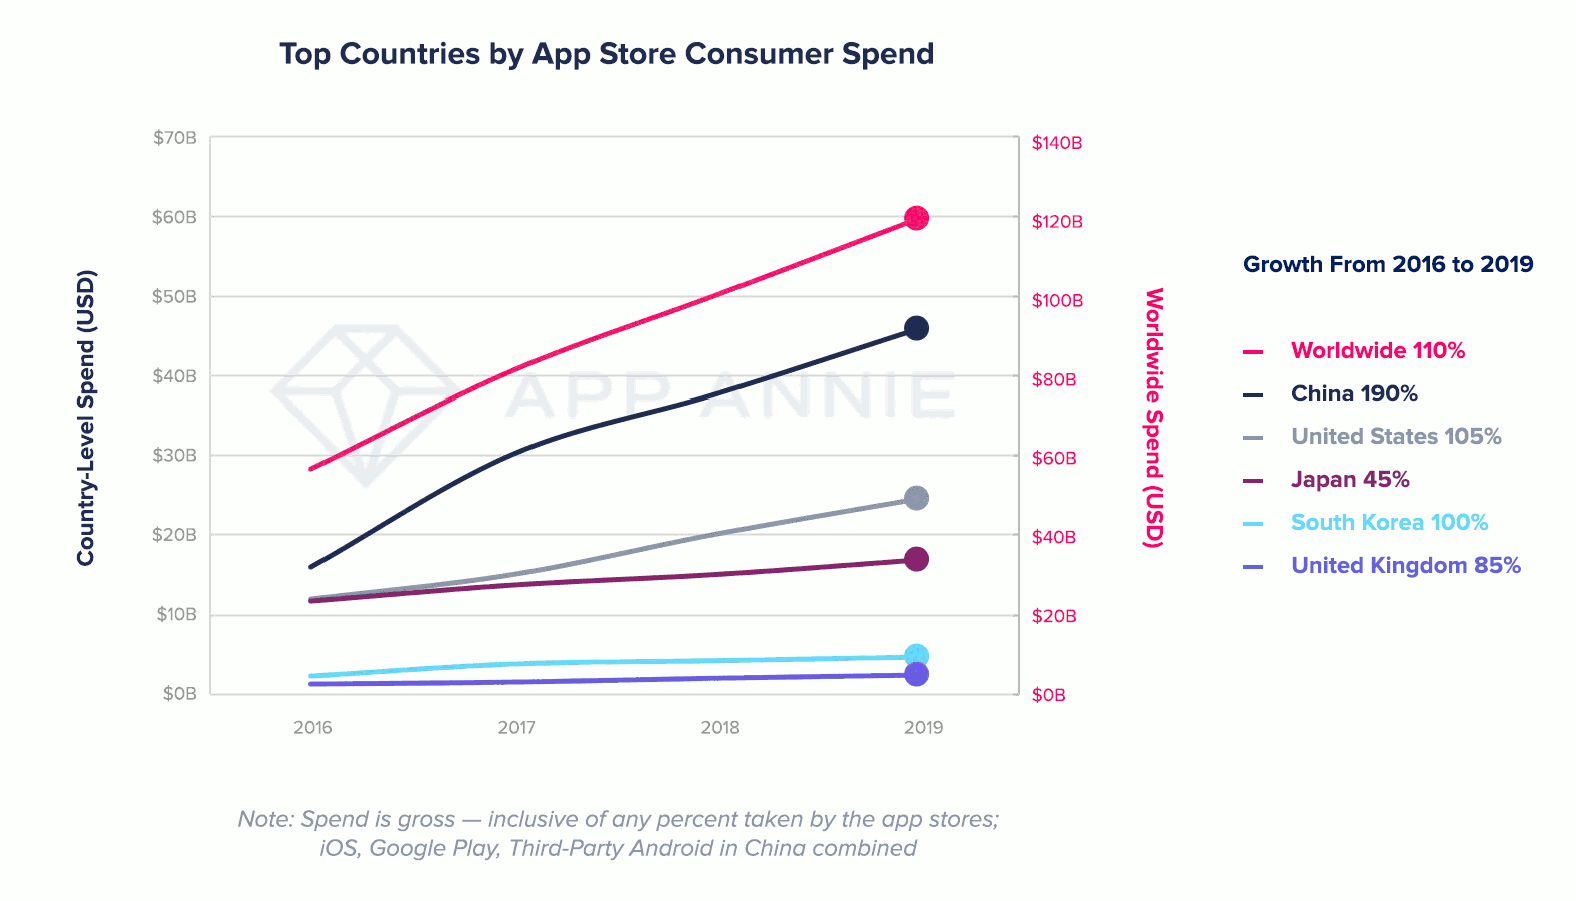 Top country by App store consumer spend